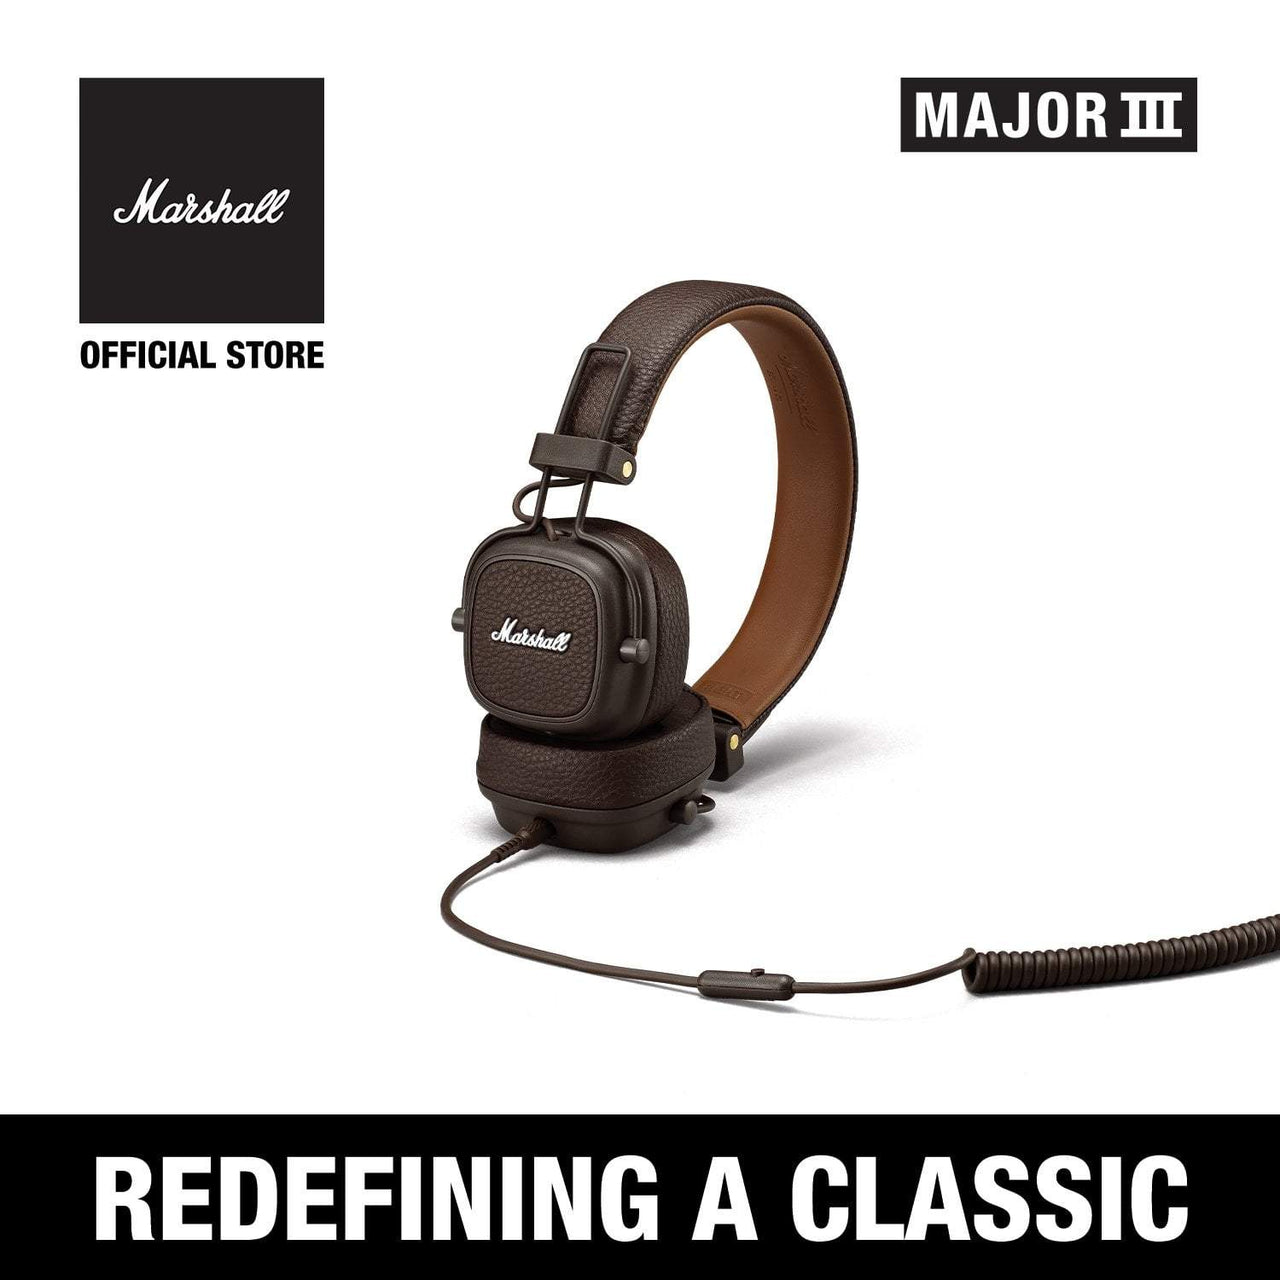 Major III Wired Brown [Exclusive Partner], Headphones, Marshall Headphones, ASH Asia